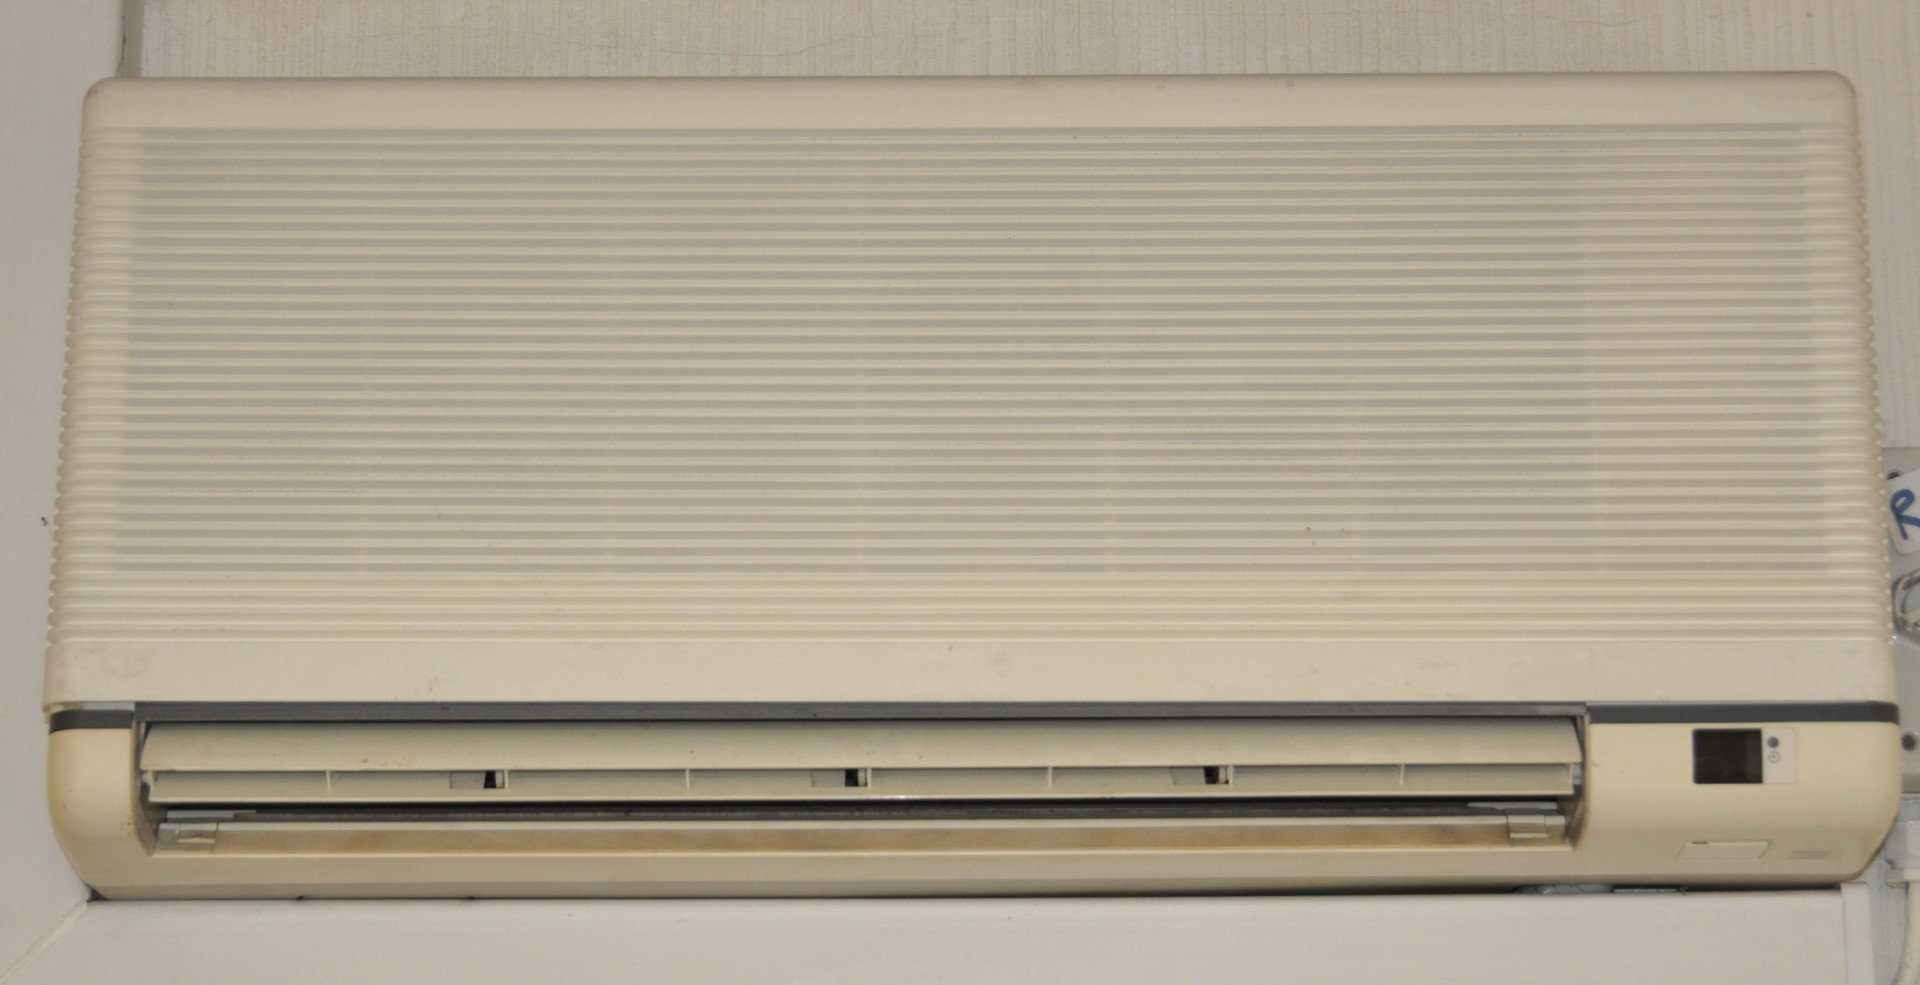 Lot 1191 1 x Daikin Air Conditioning Unit Model FT353DB7V1 220  #434E67